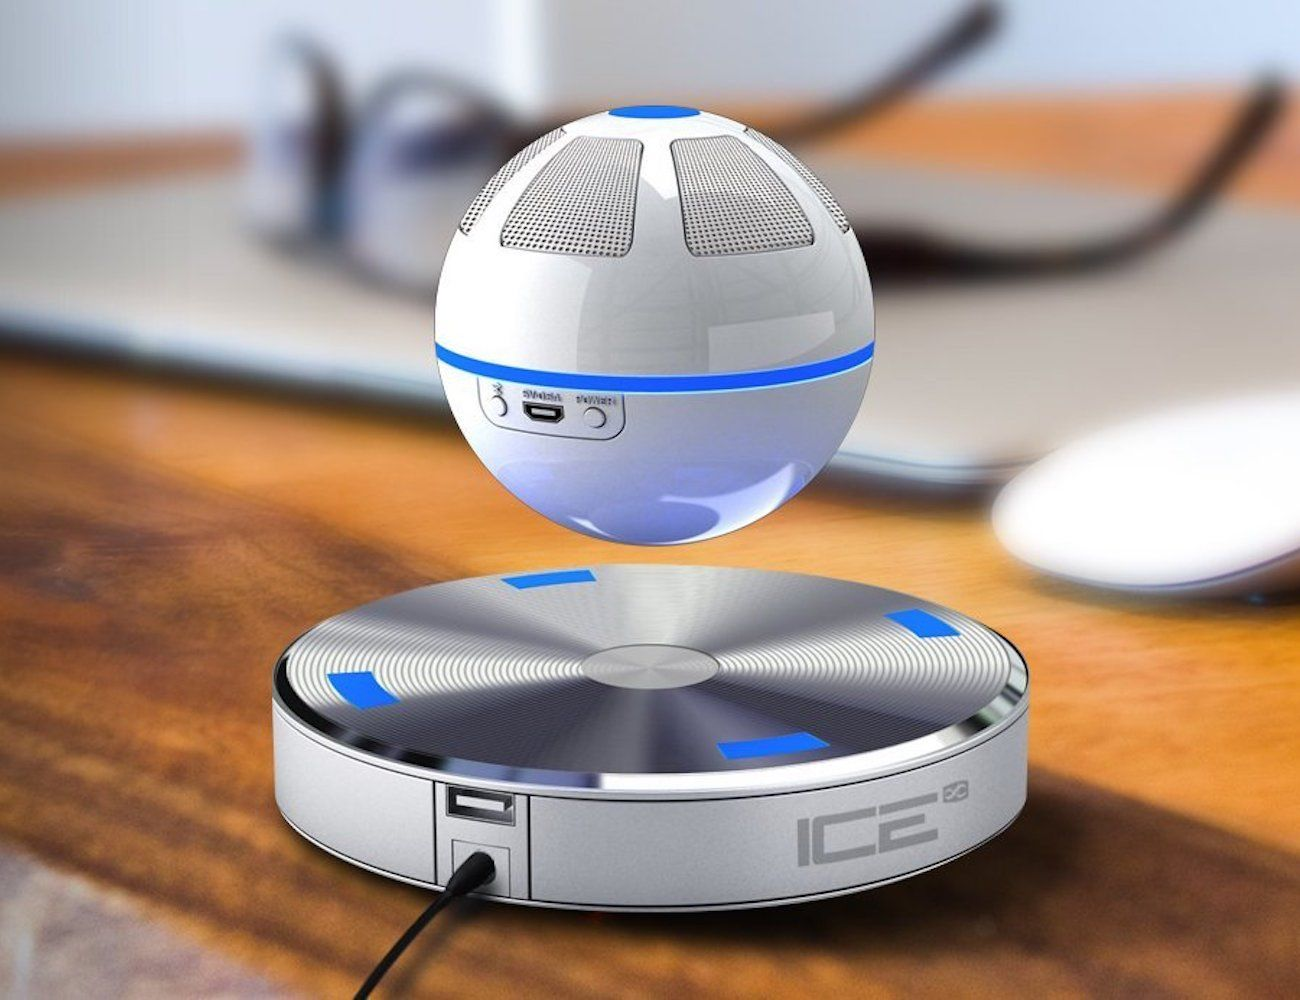 ICEORB Floating Bluetooth Speaker Cool gadgets, Gadgets